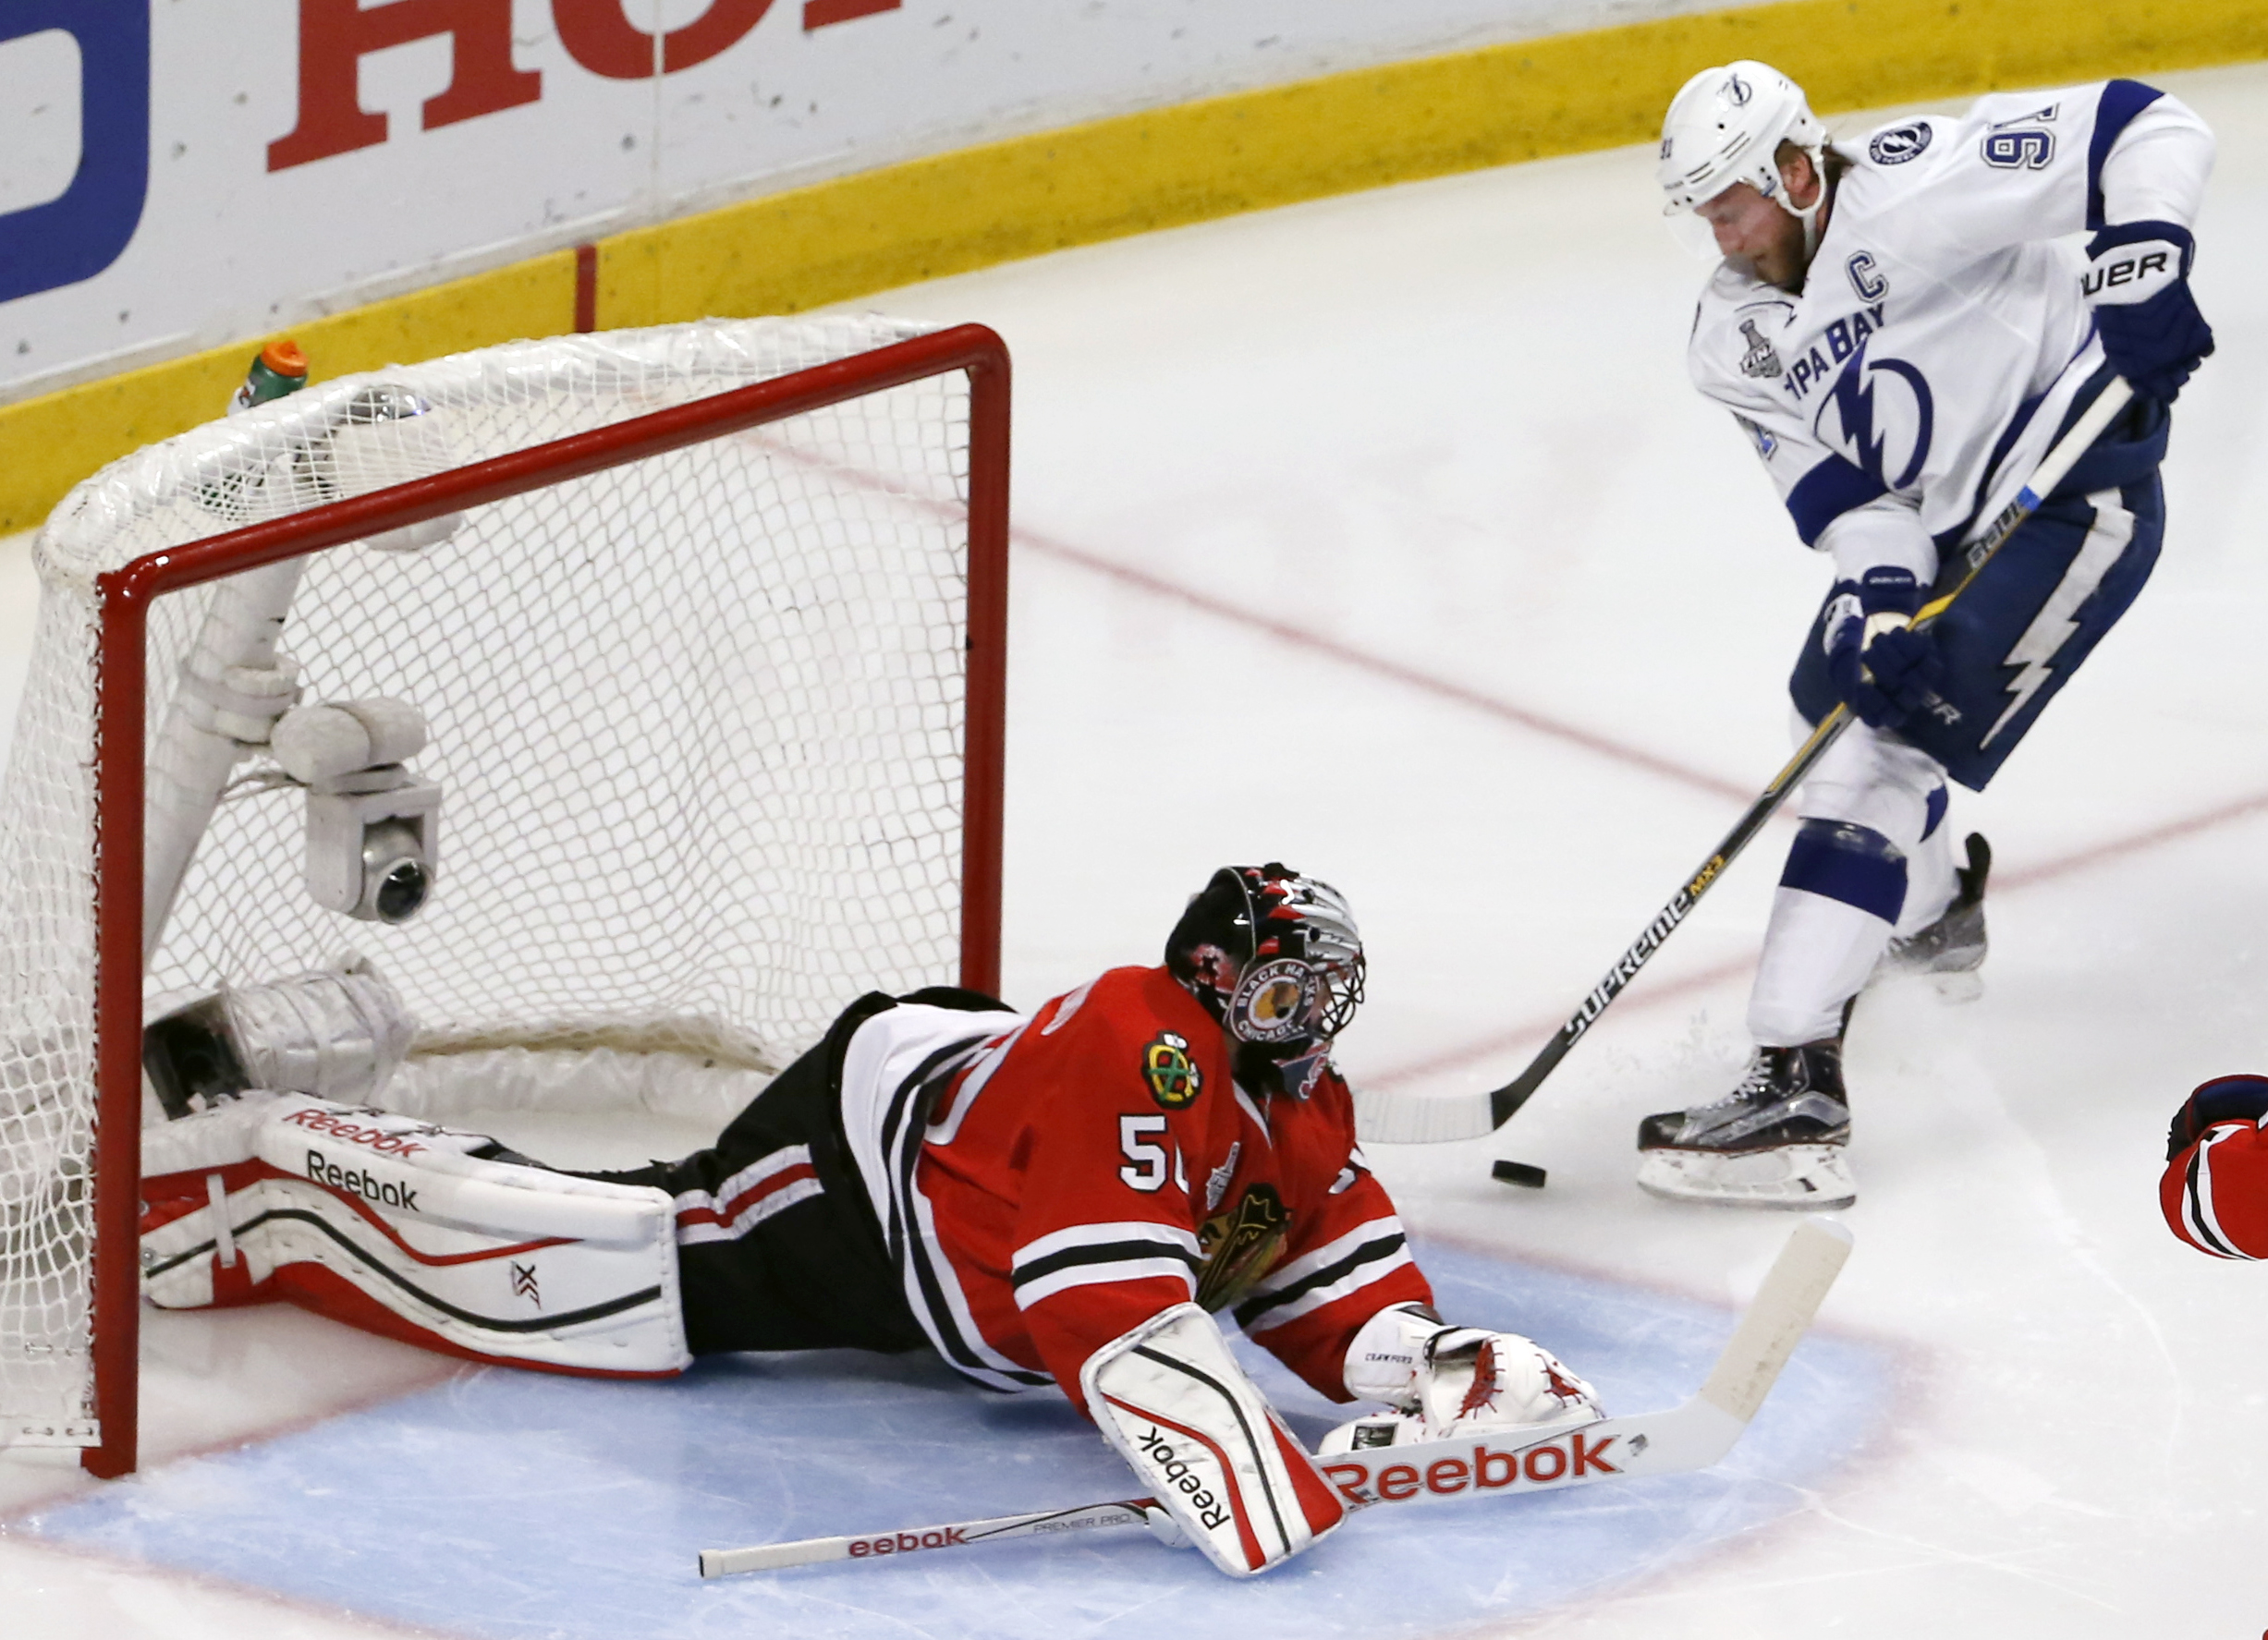 Chicago Blackhawks goalie Corey Crawford, left, makes a save on a shot by Tampa Bay Lightning's Steven Stamkos during the second period in Game 6 of the NHL hockey Stanley Cup Final series on Monday, June 15, 2015, in Chicago. (AP Photo/Charles Rex Arboga